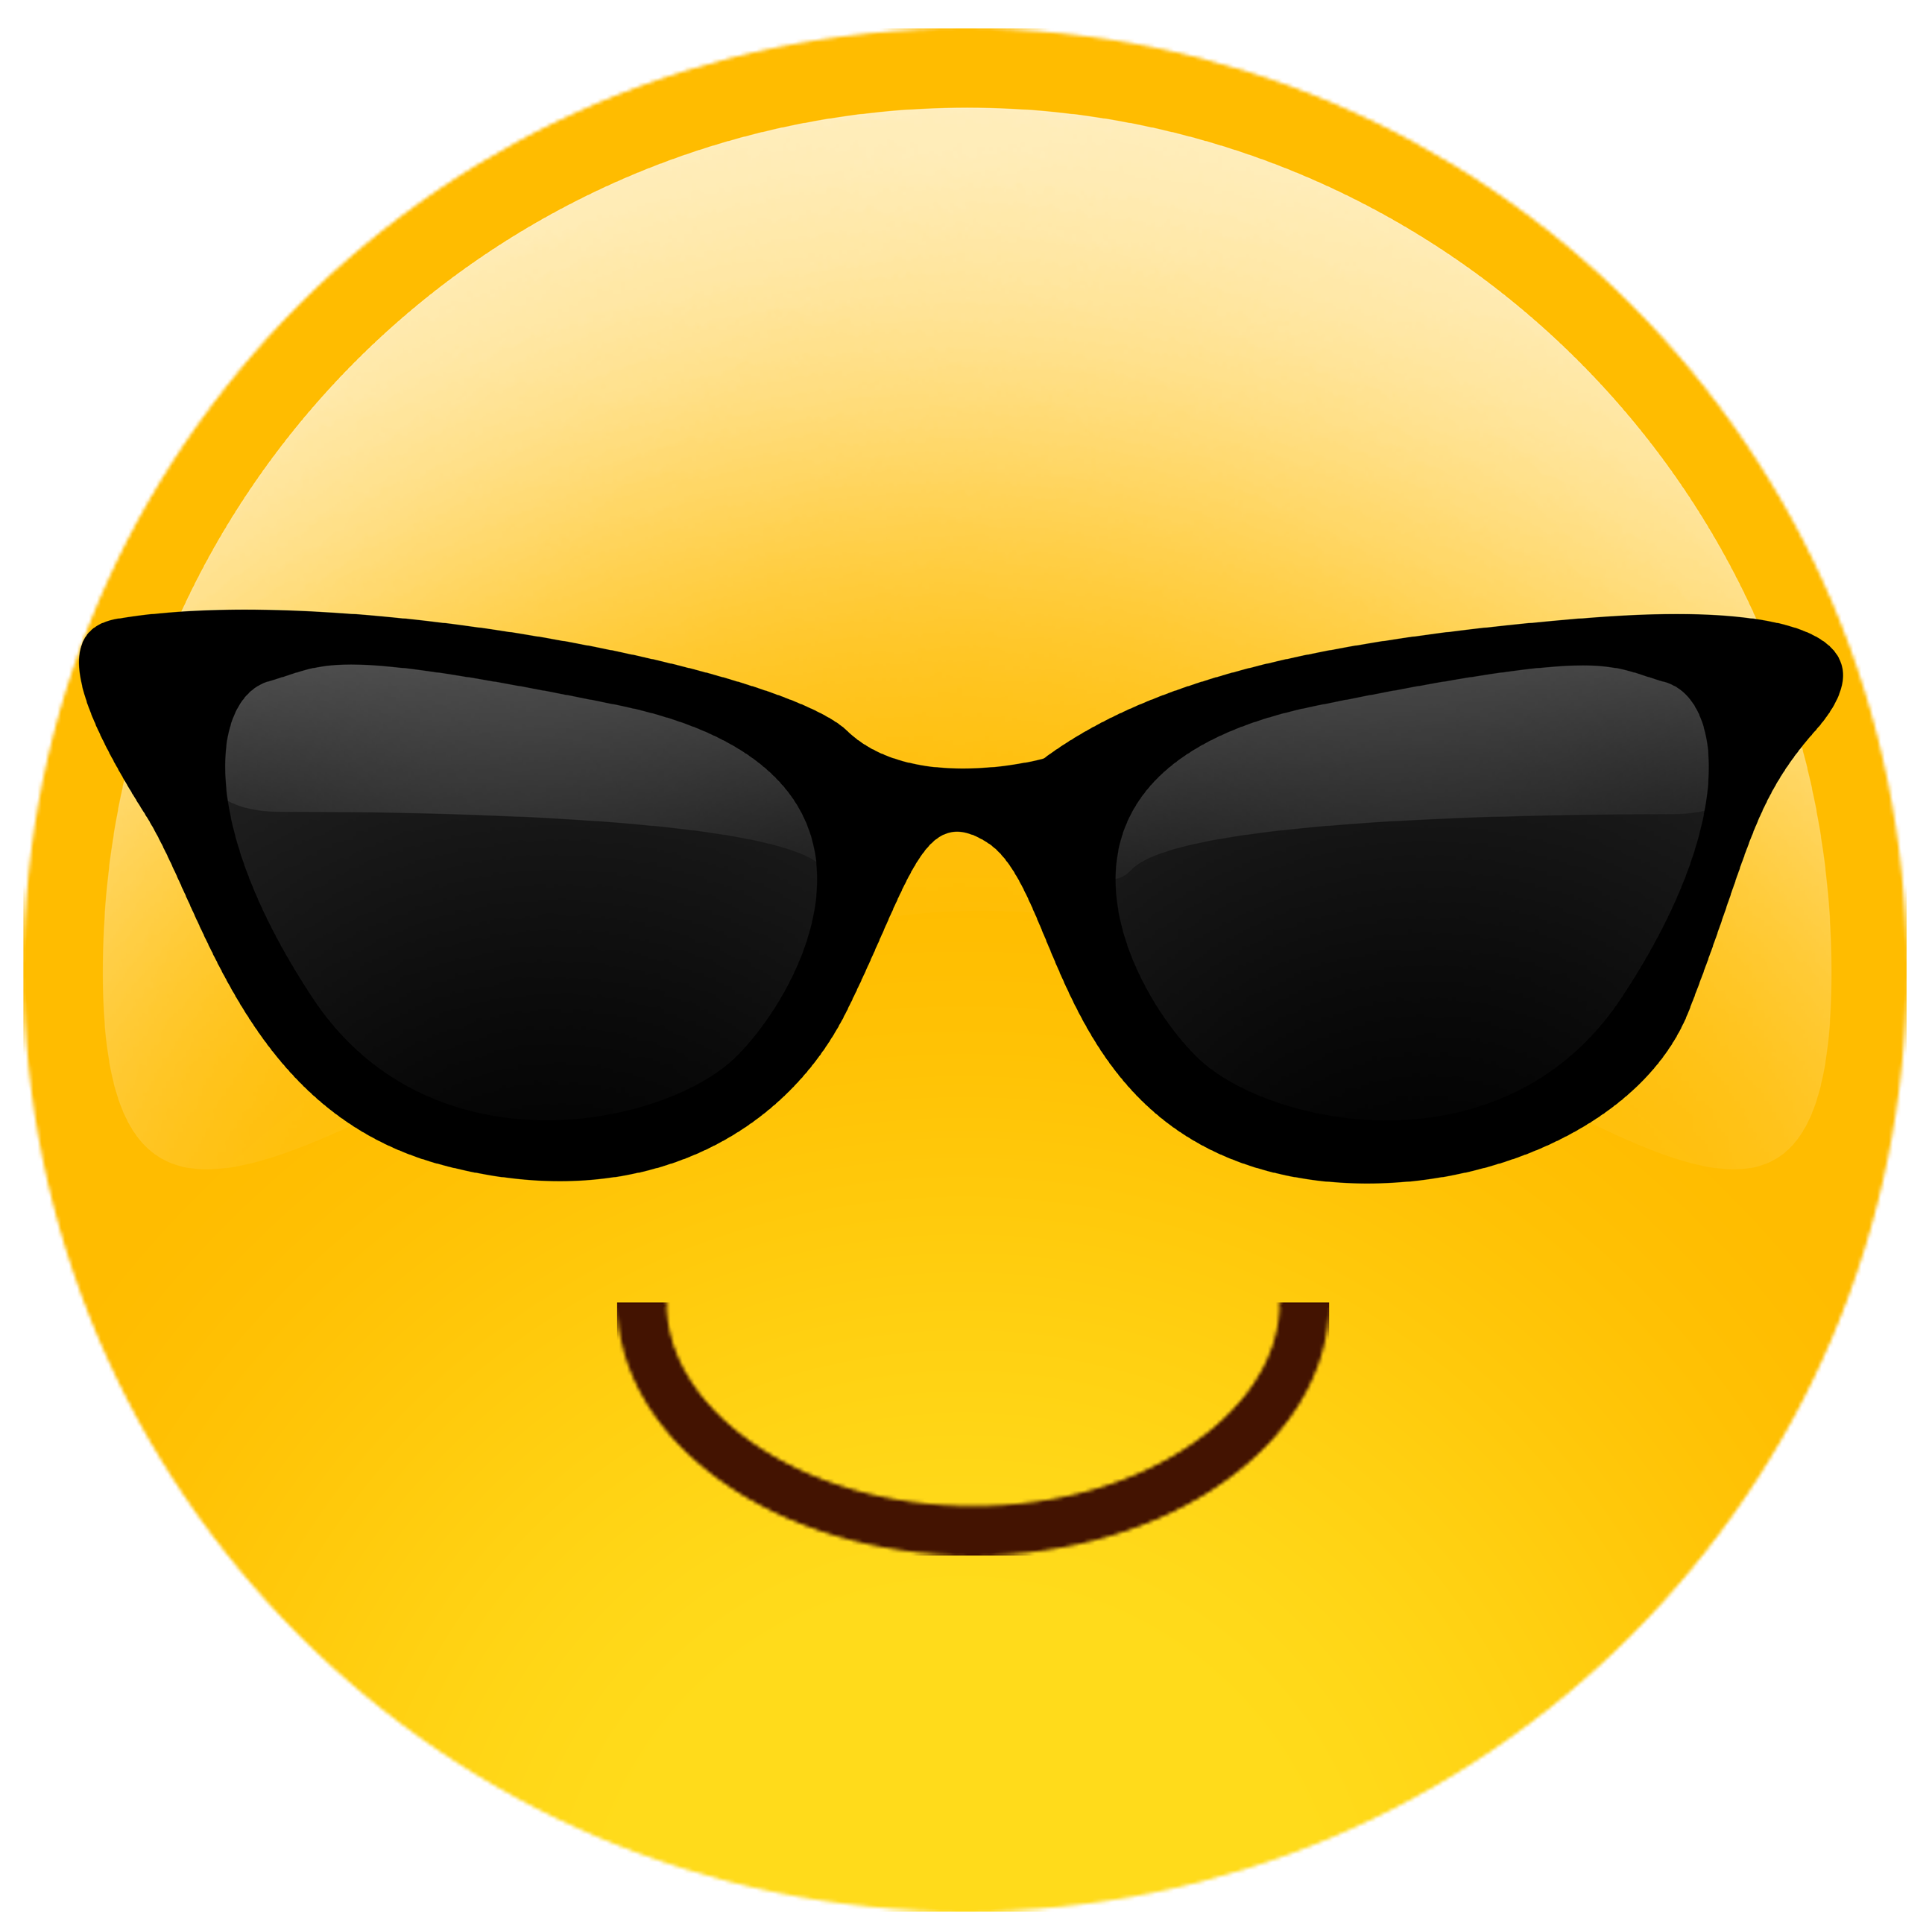 Nerd glasses clipart with apple image transparent stock Sunglasses Emoji Cutouts | Pinterest | Emoji, Big head cutouts and ... image transparent stock